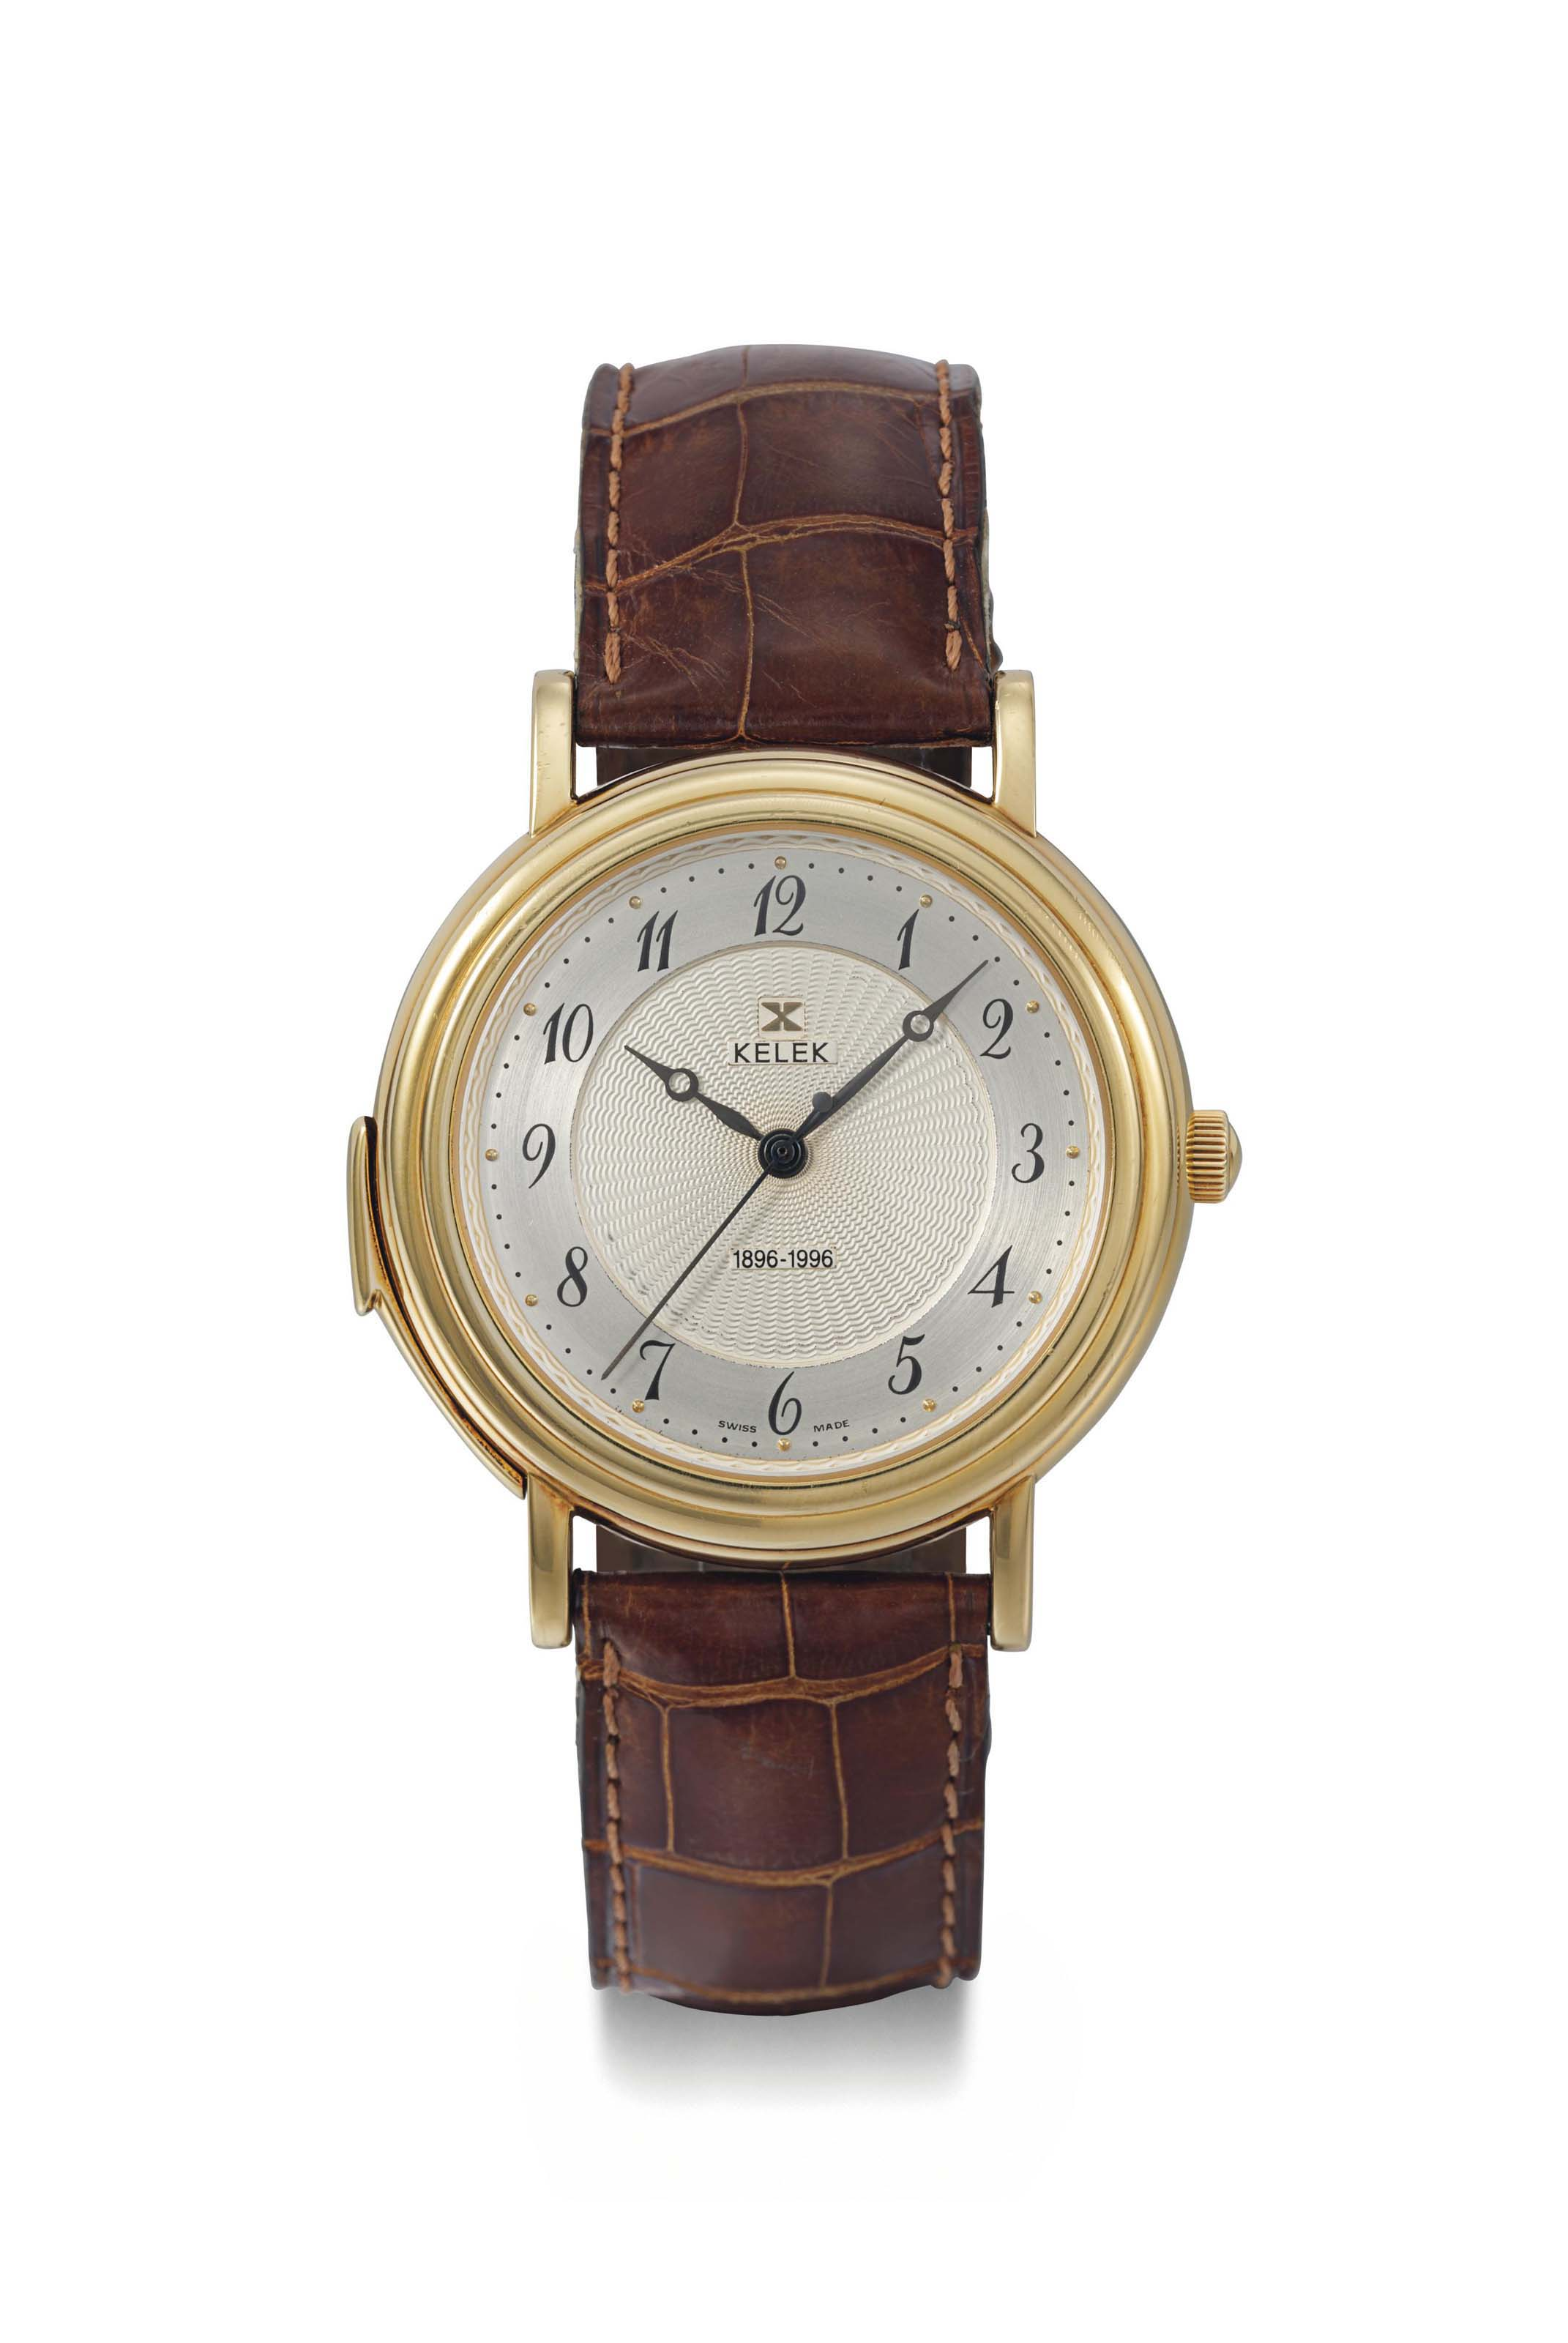 Kelek. A fine 18K gold limited edition automatic hour and quarter repeating wristwatch with original box and guarantee